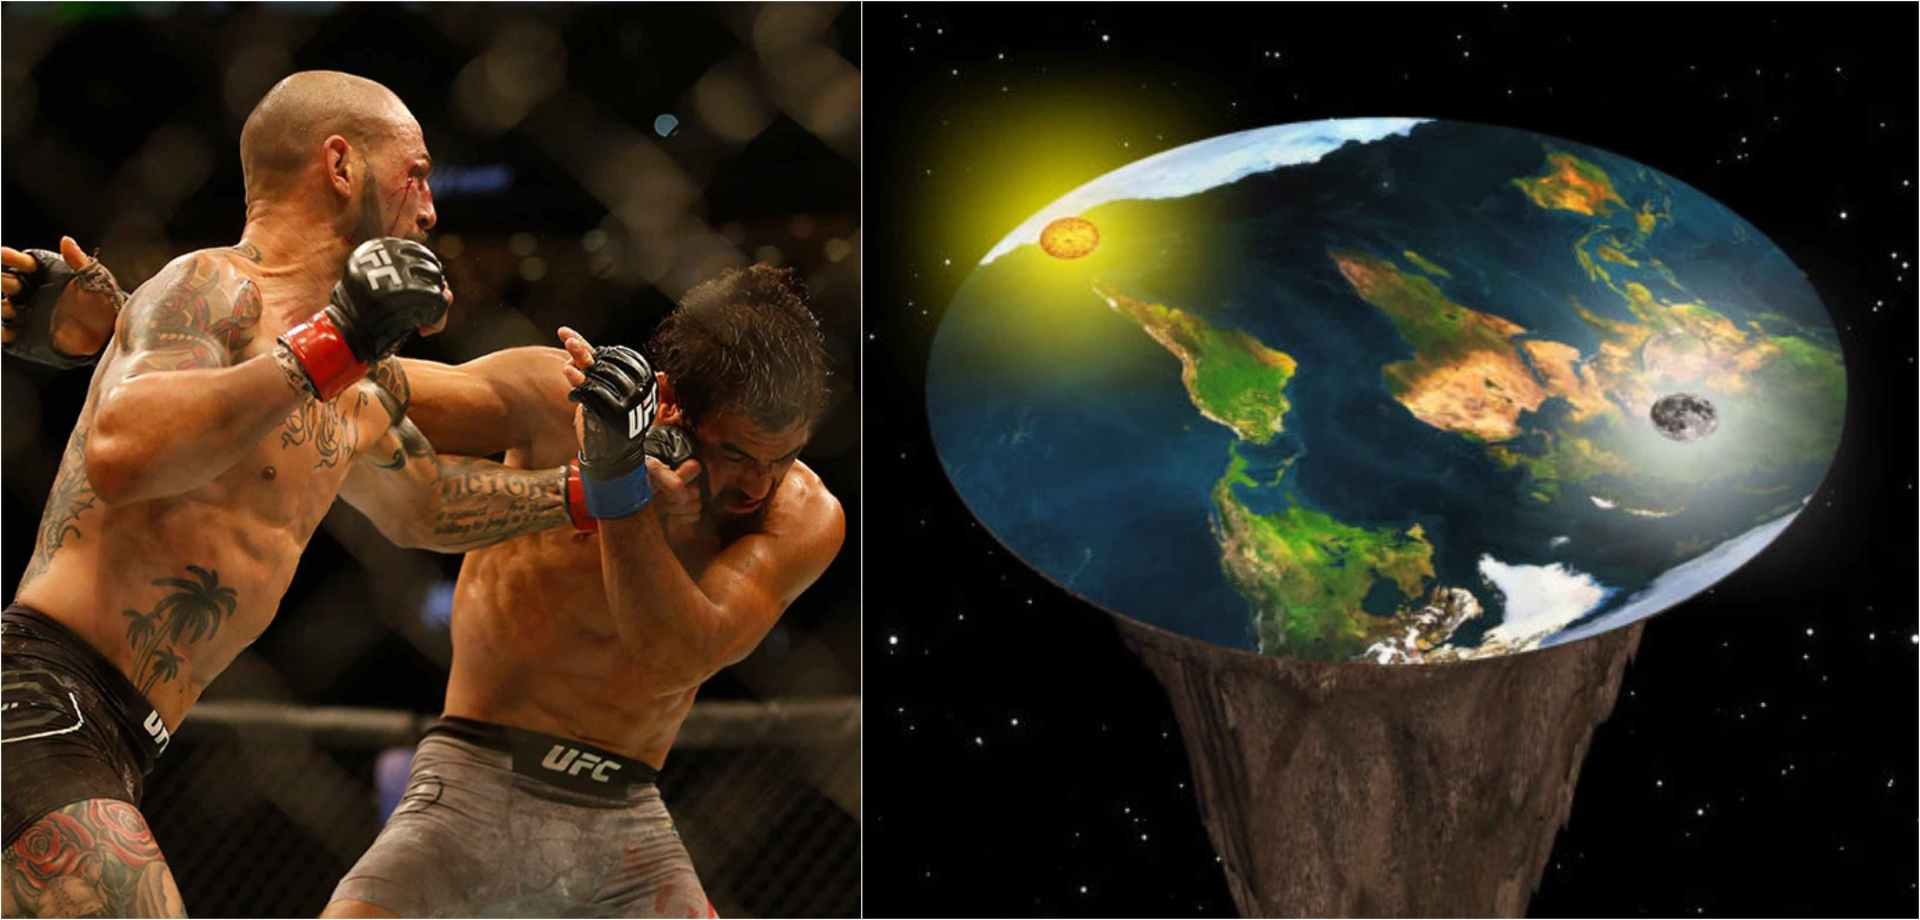 Cub Swanson takes parting shot at 'flat earther' Kron Gracie after UFC on ESPN+ 19 war - Swanson